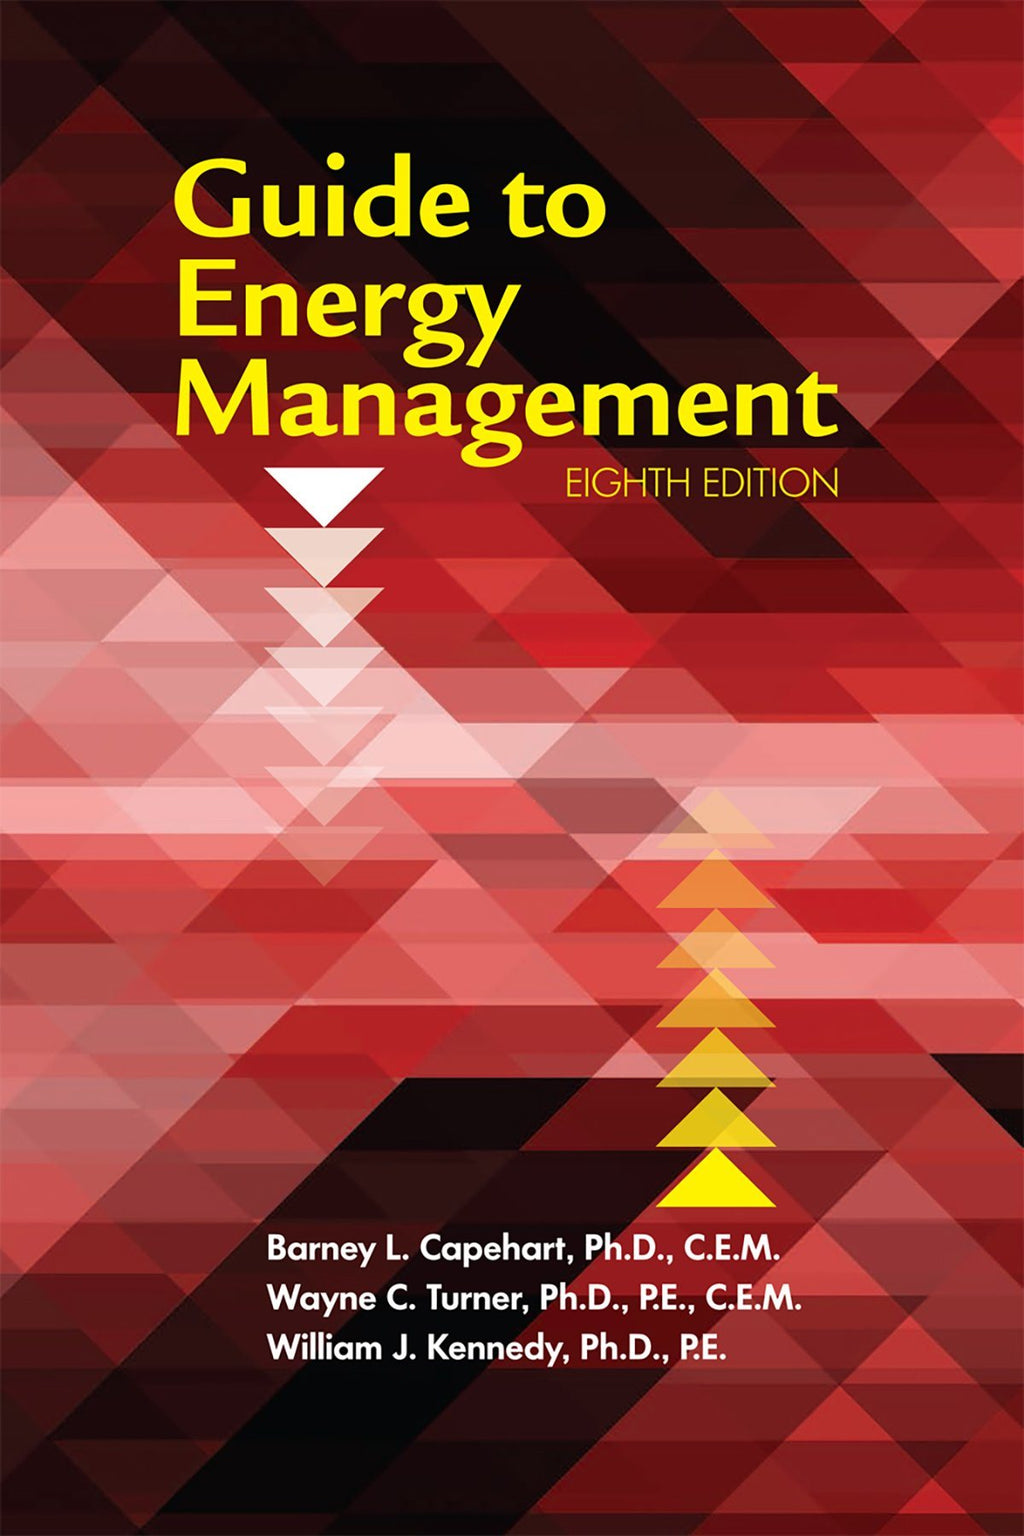 Guide To Energy Management, 8th Edition - AEE Programs